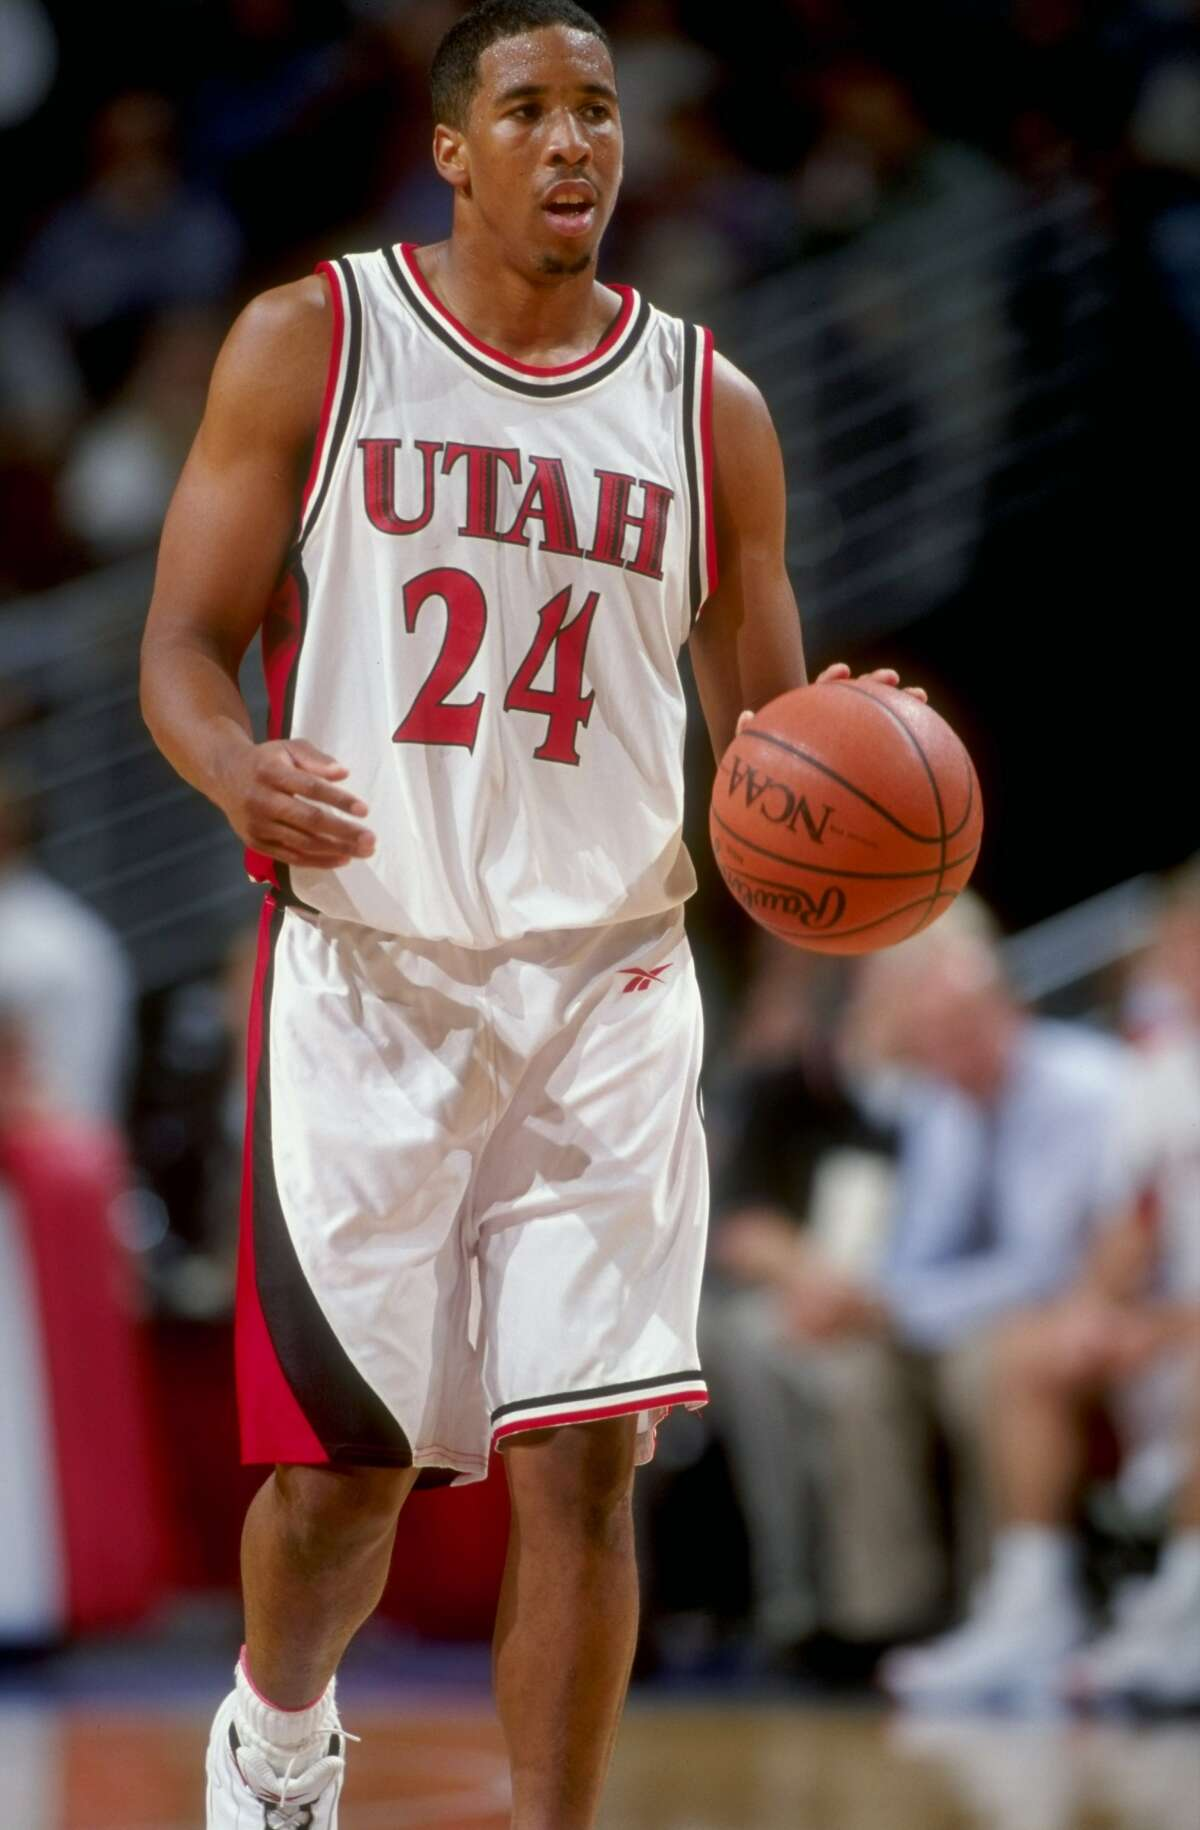 13. He was drafted last millennium Miller was the eighth overall pick of the 1999 NBA Draft out of Utah. He spent three seasons in Cleveland before beginning his vagabond ways.